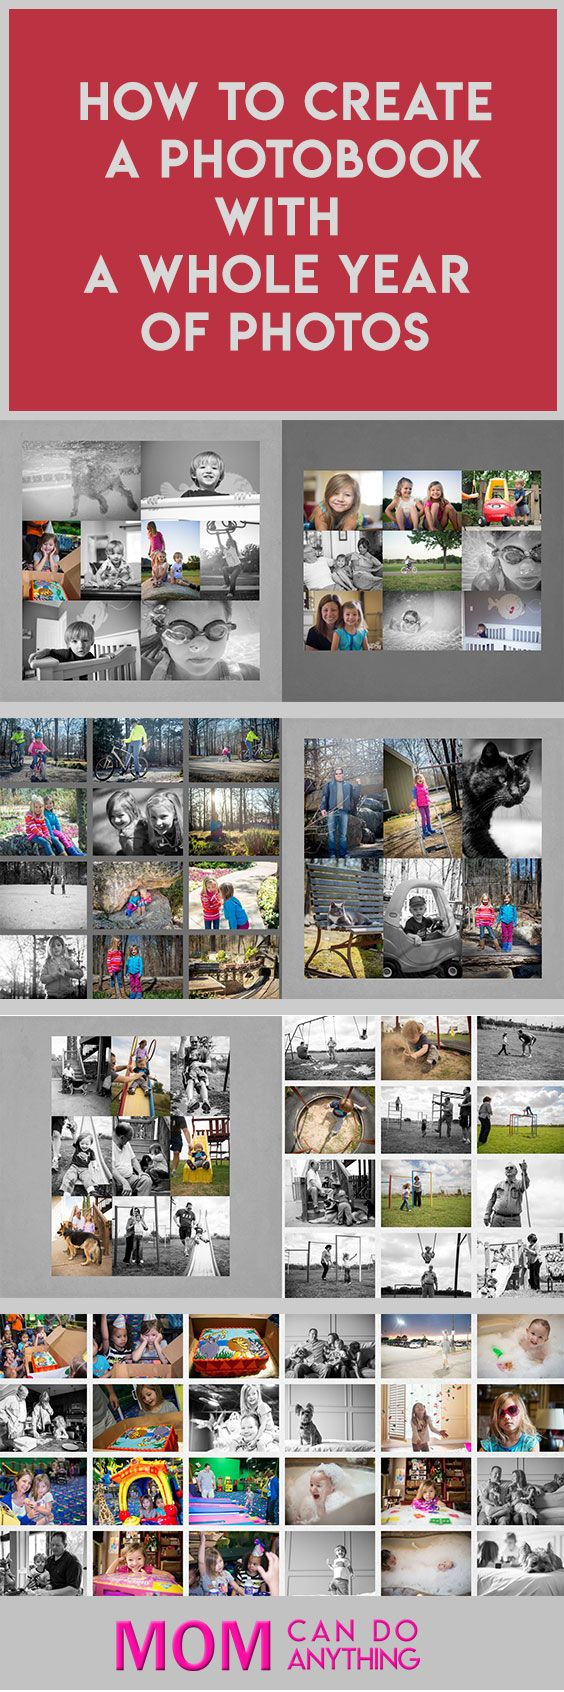 This is a great system for organizing your photos and creating family albums each year.